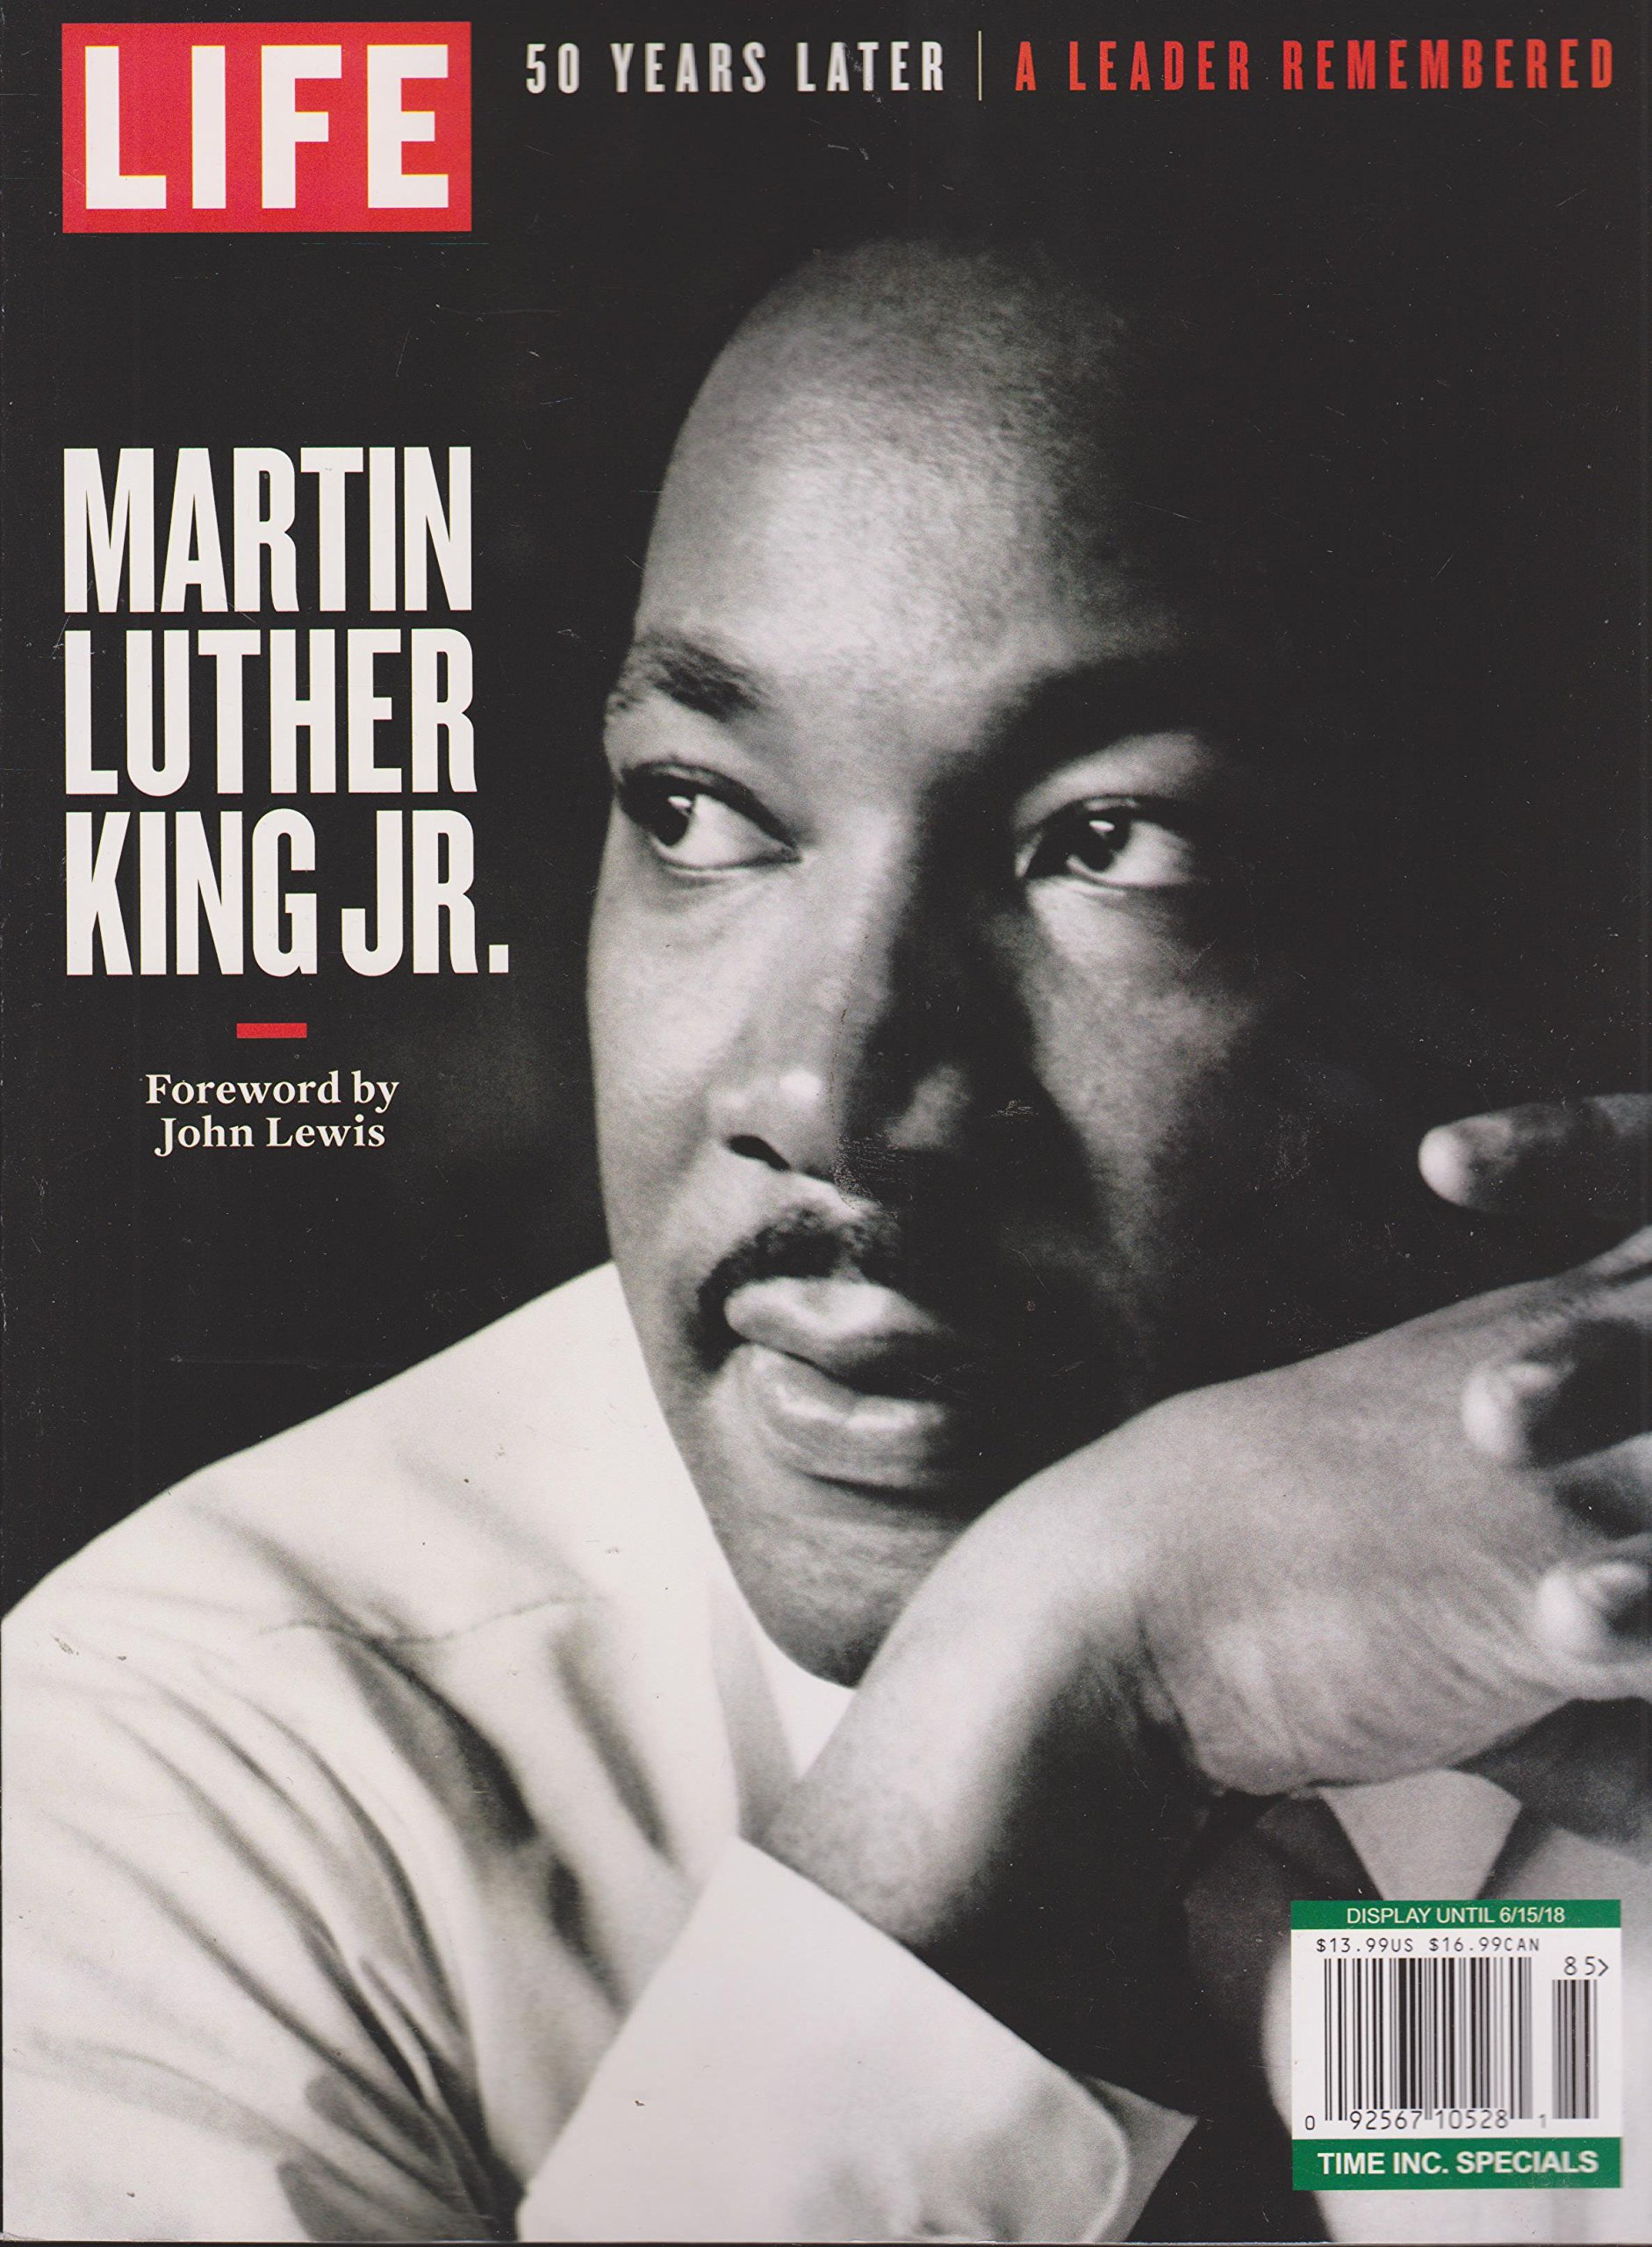 Life Martin Luther King Jr Magazine 50 Years Later 2018 pdf